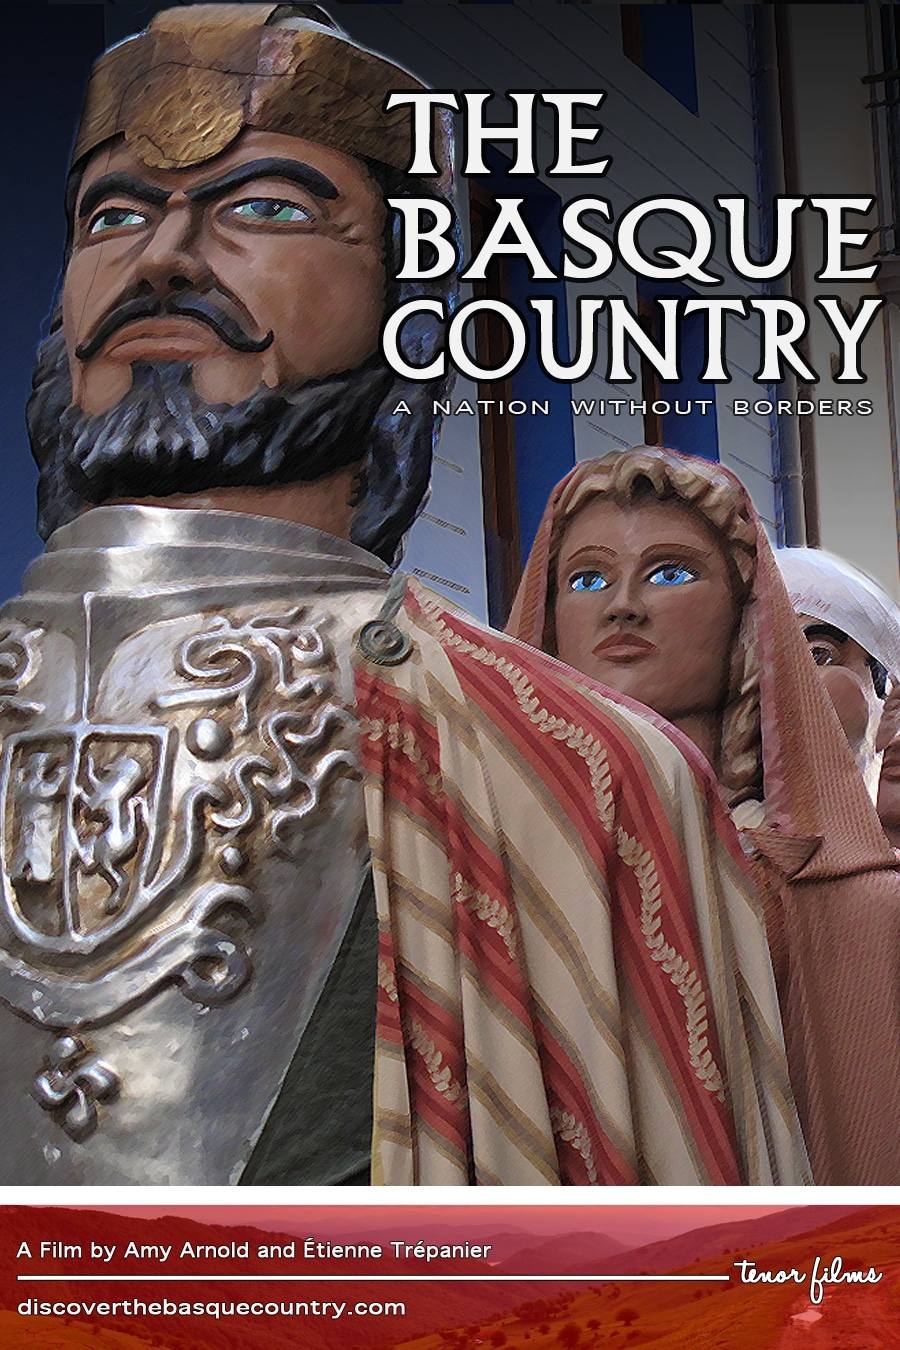 Carátula del documental THE BASQUE COUNTRY - A Nation Without Borders